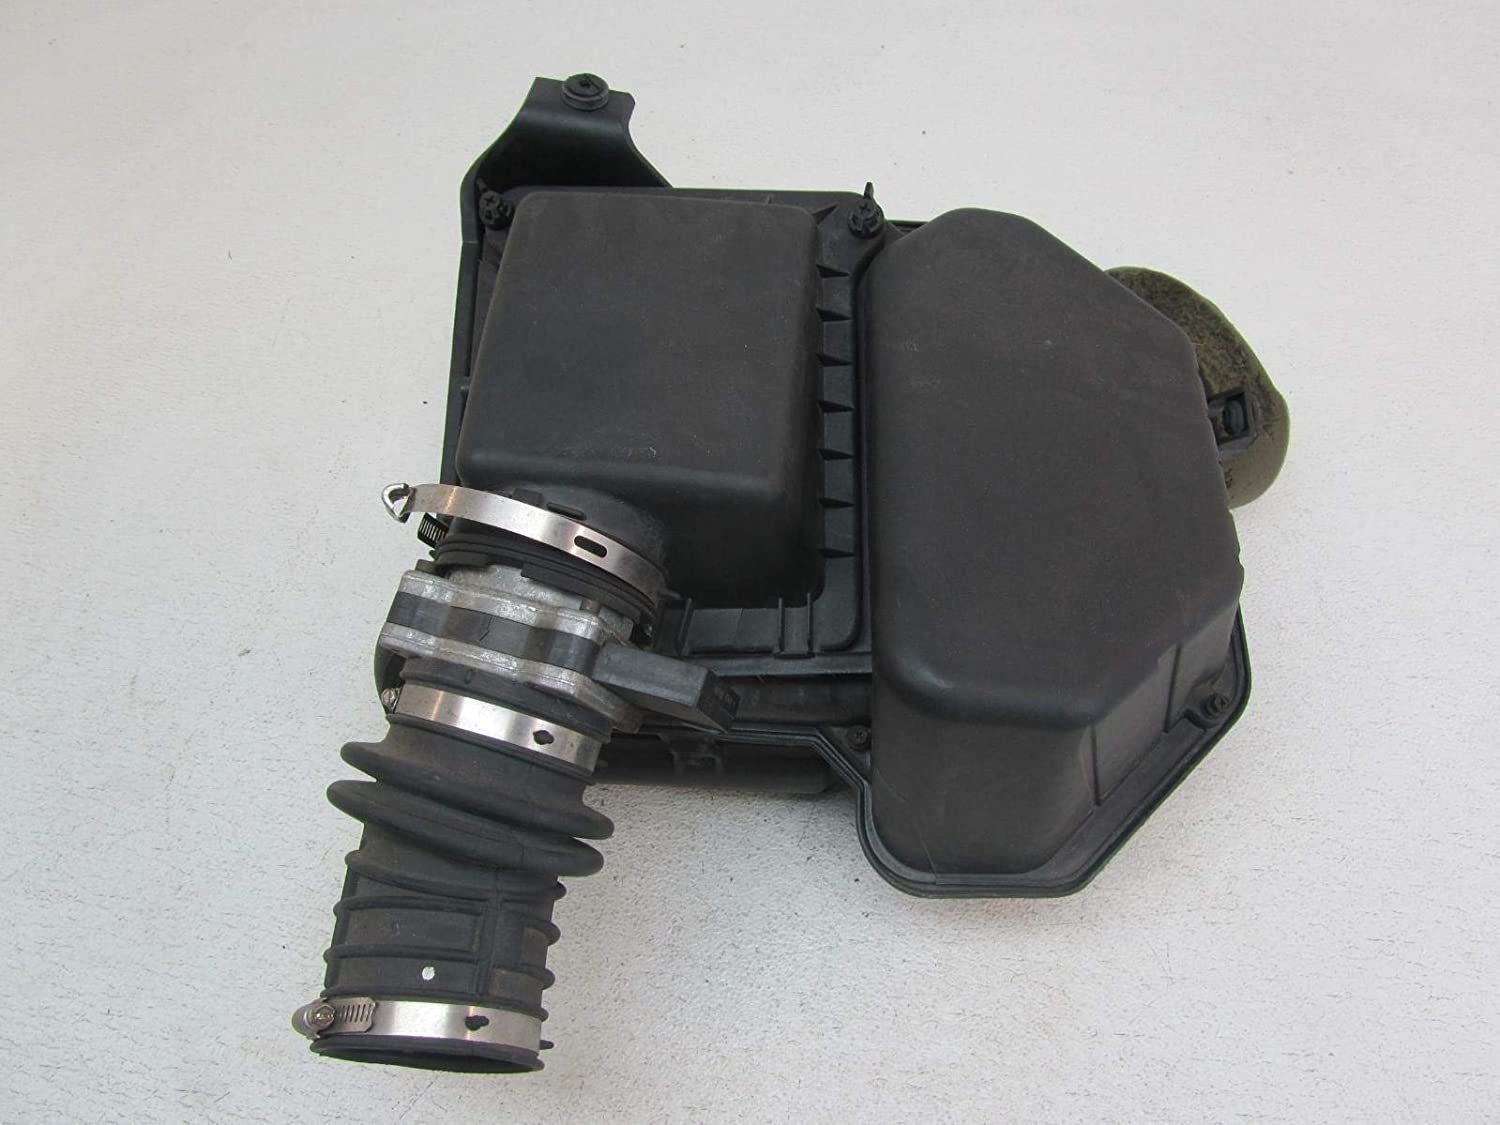 Morad Portland Mall Parts 01 02 Oldsmobile Aurora Cleaner Housing B Air Super Special SALE held Filter